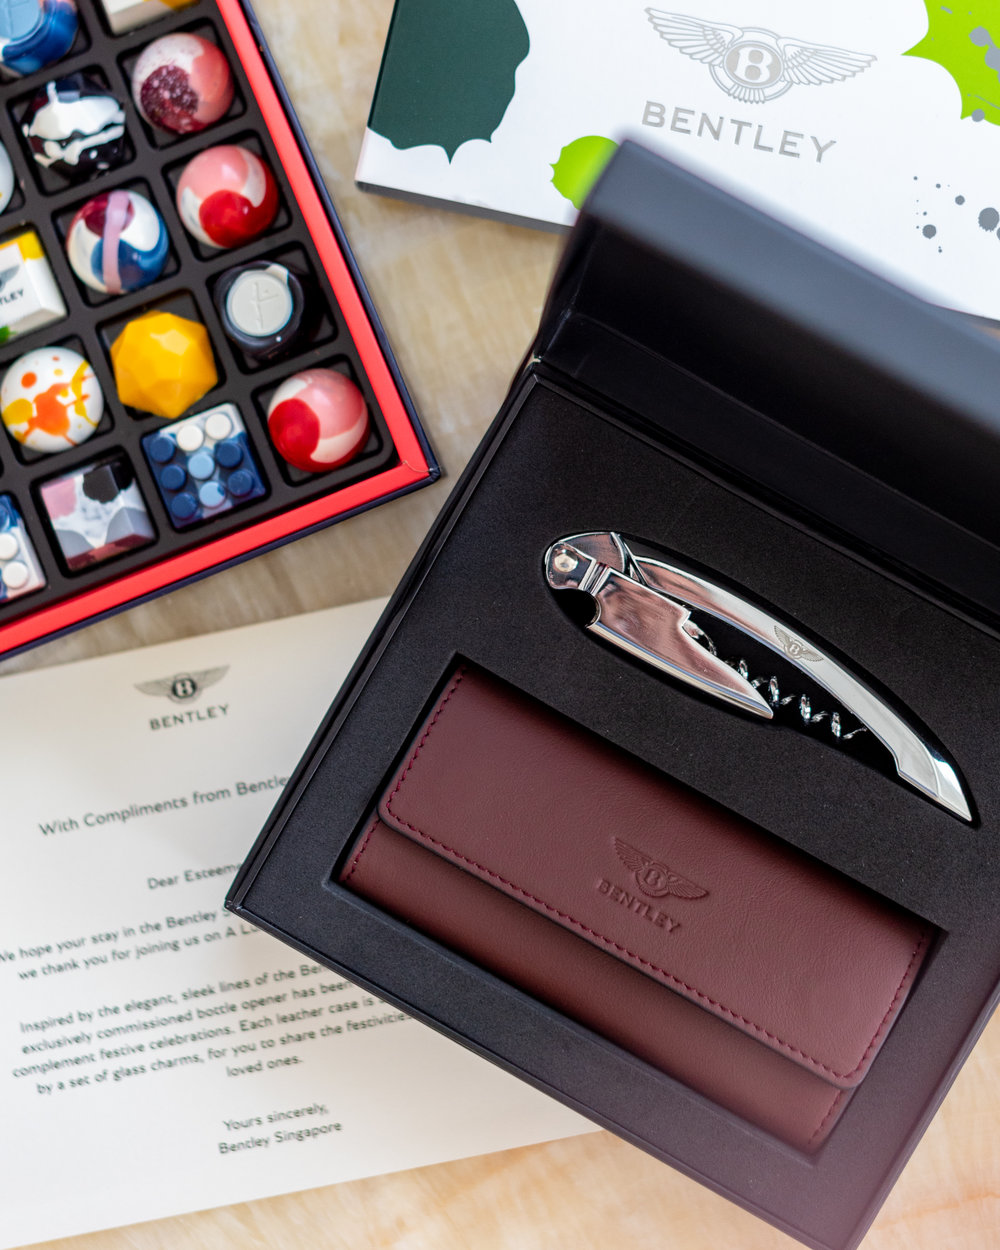 Bentley Welcome Amenity and Gift Set   The St. Regis Singapore